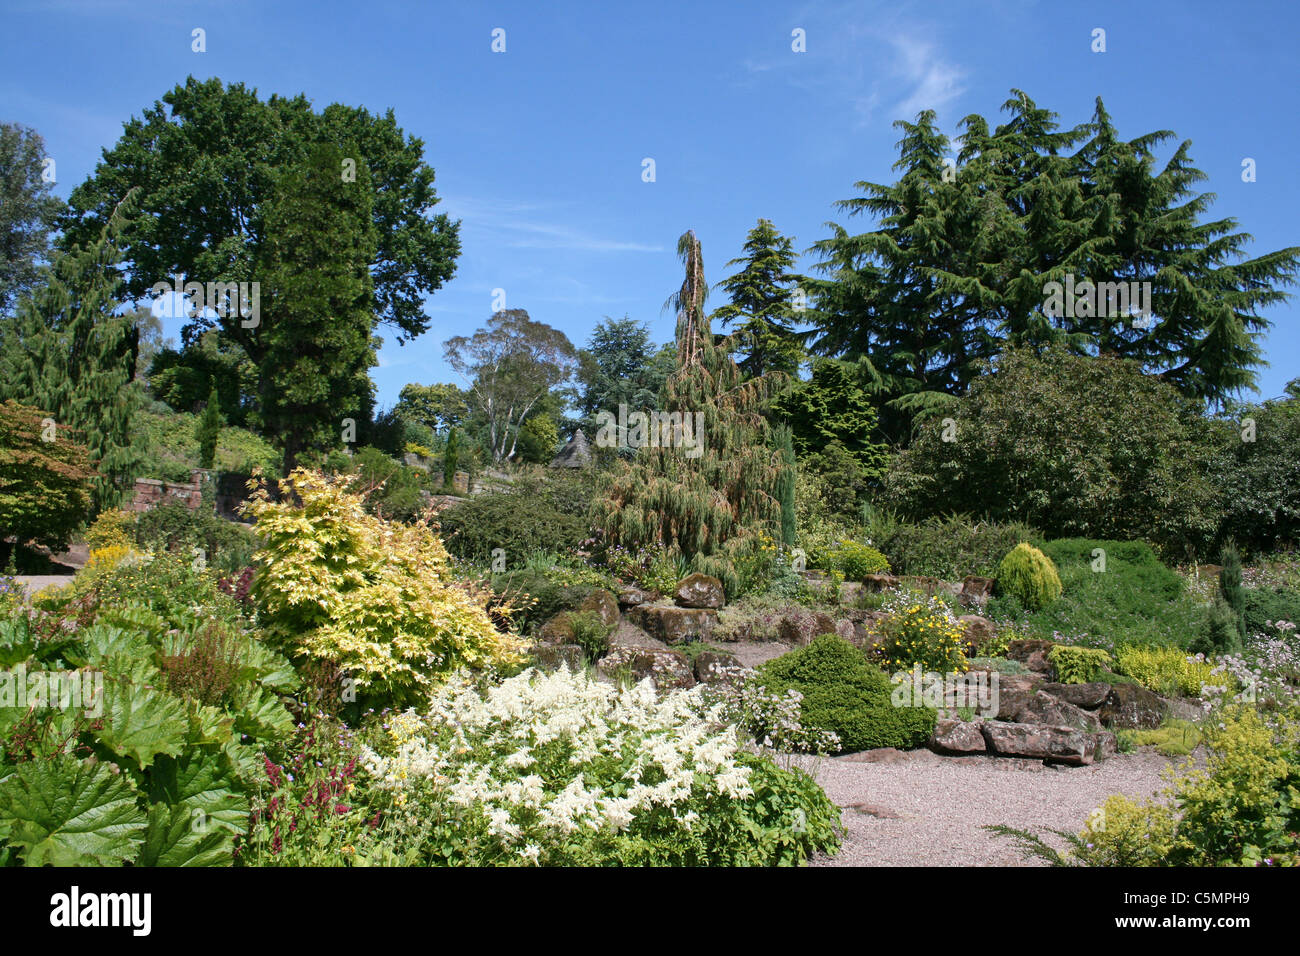 View Of The Rock Garden At Ness Botanical Gardens, Wirral, UK - Stock Image